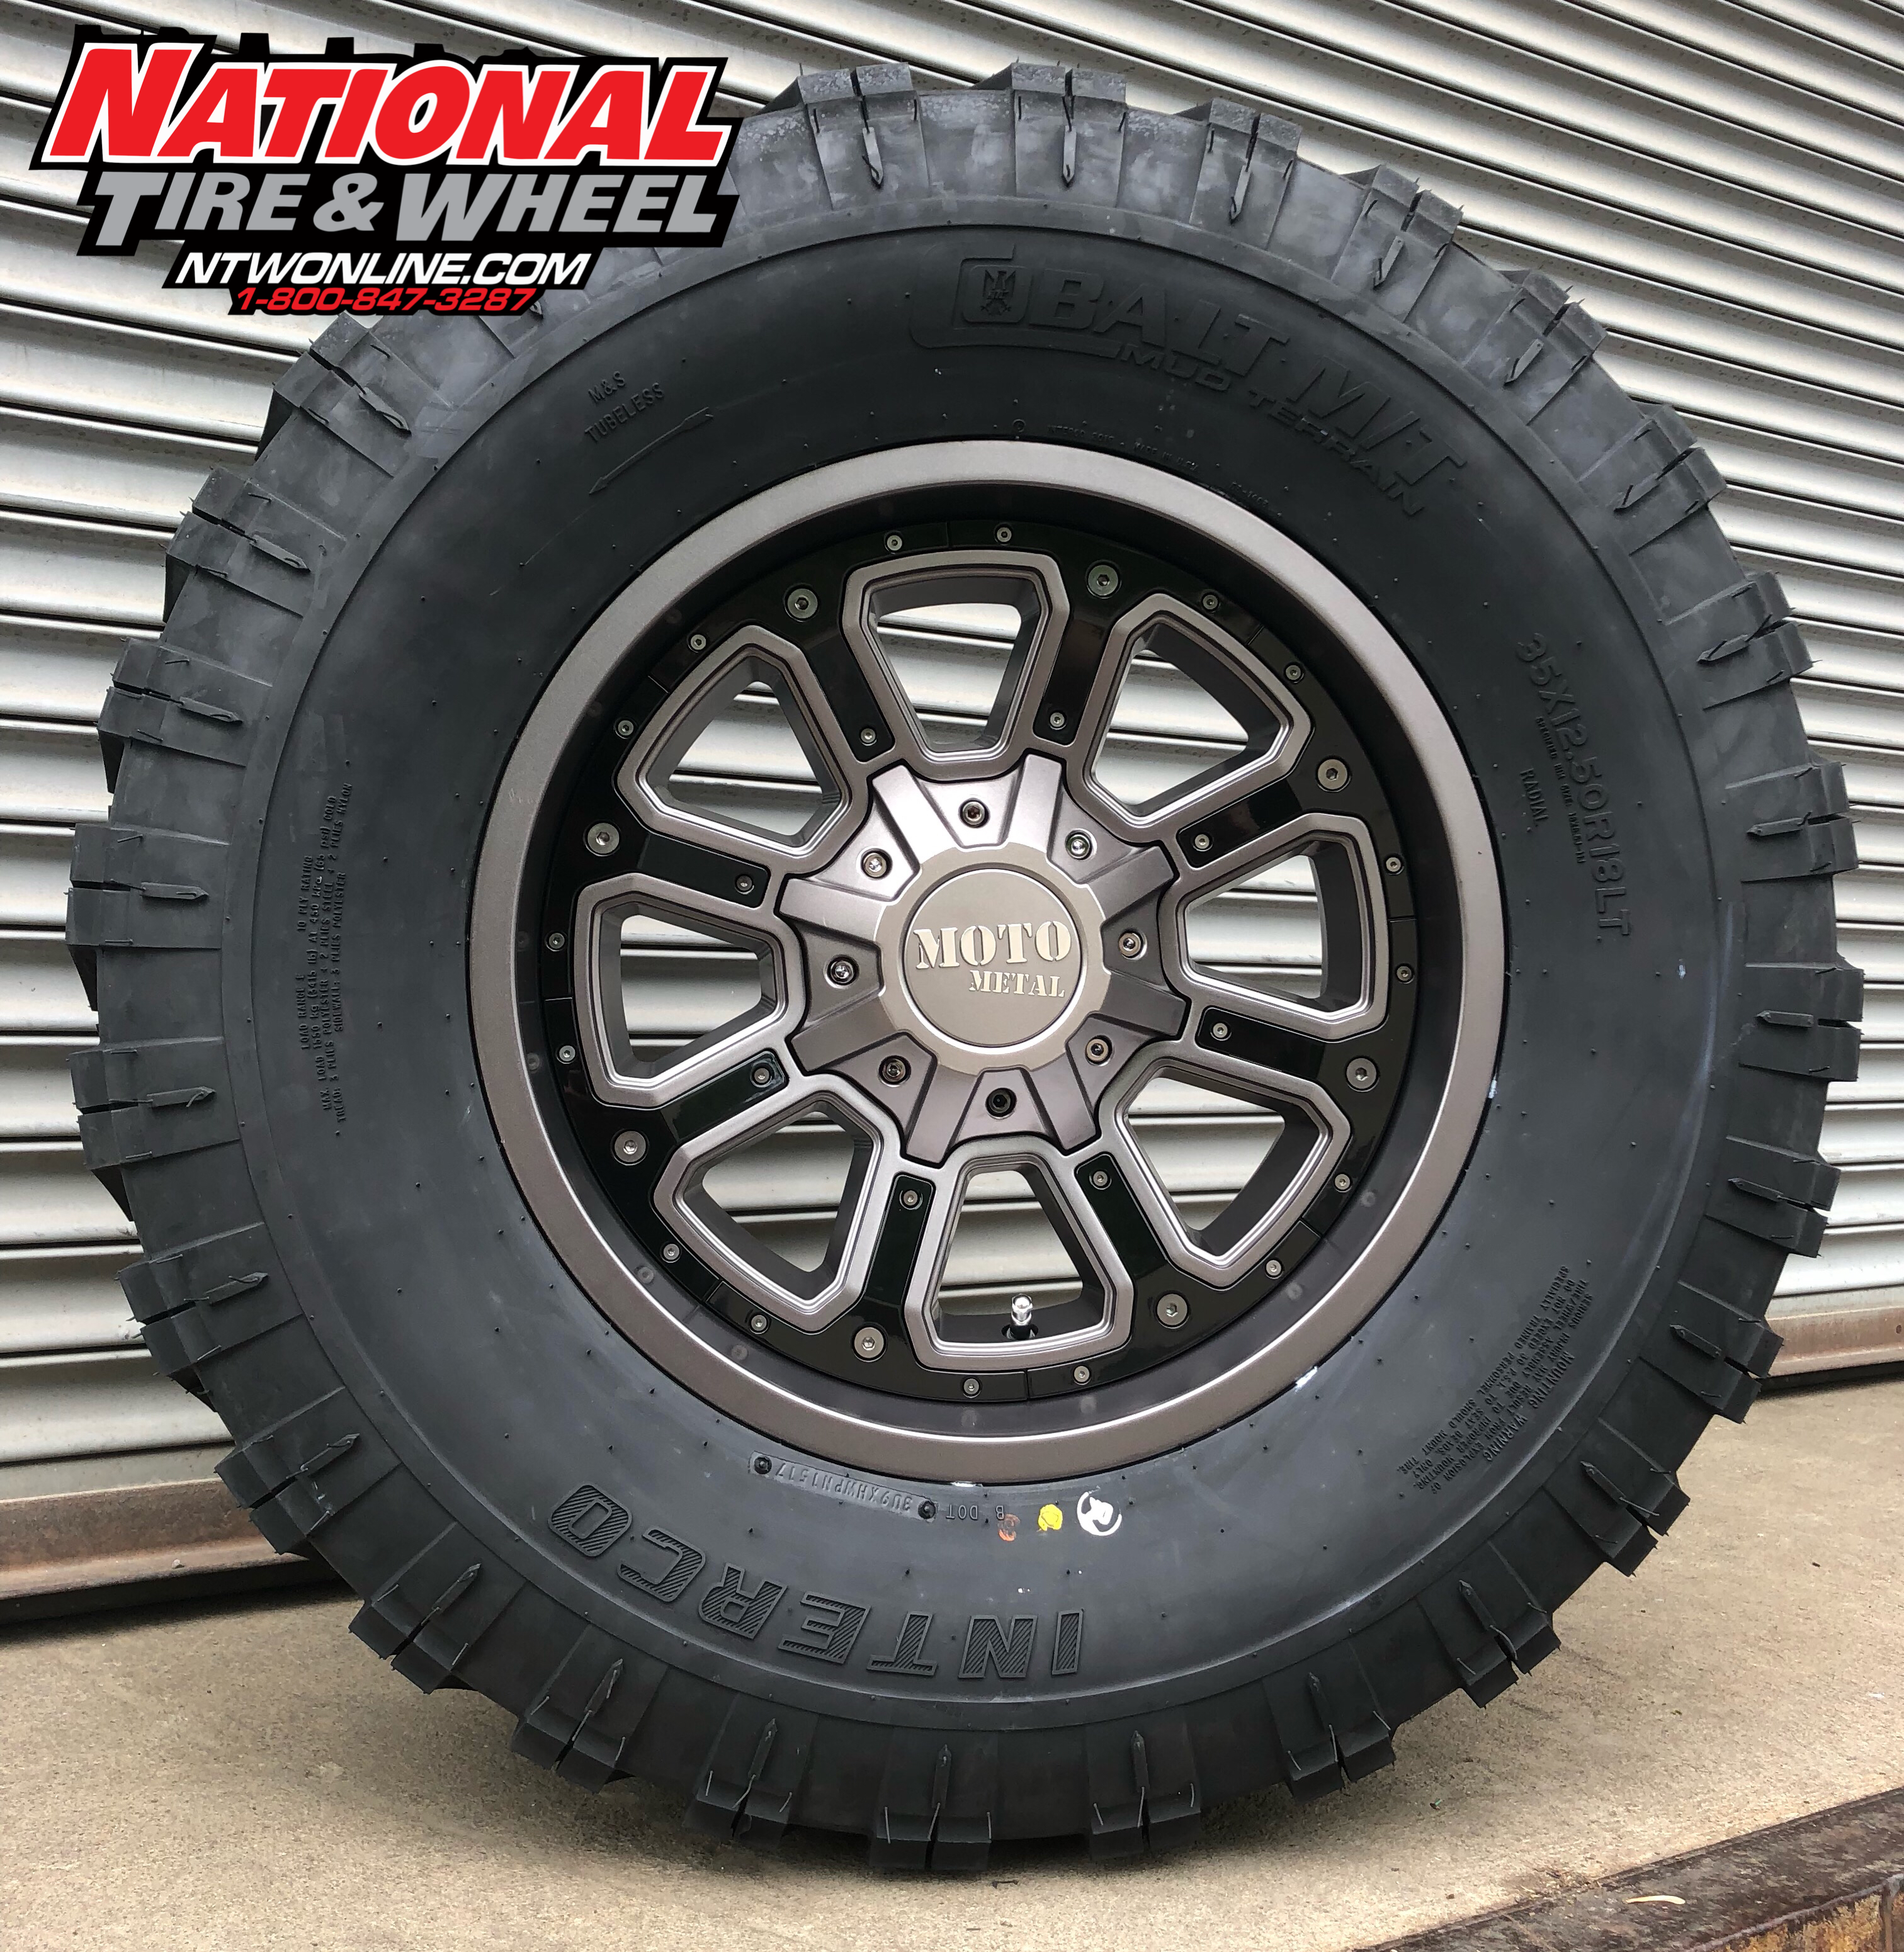 National Tire And Wheel >> 18x9 Moto Metal Type 984 Shift Mounted Up To A 35x12 50r18 Super